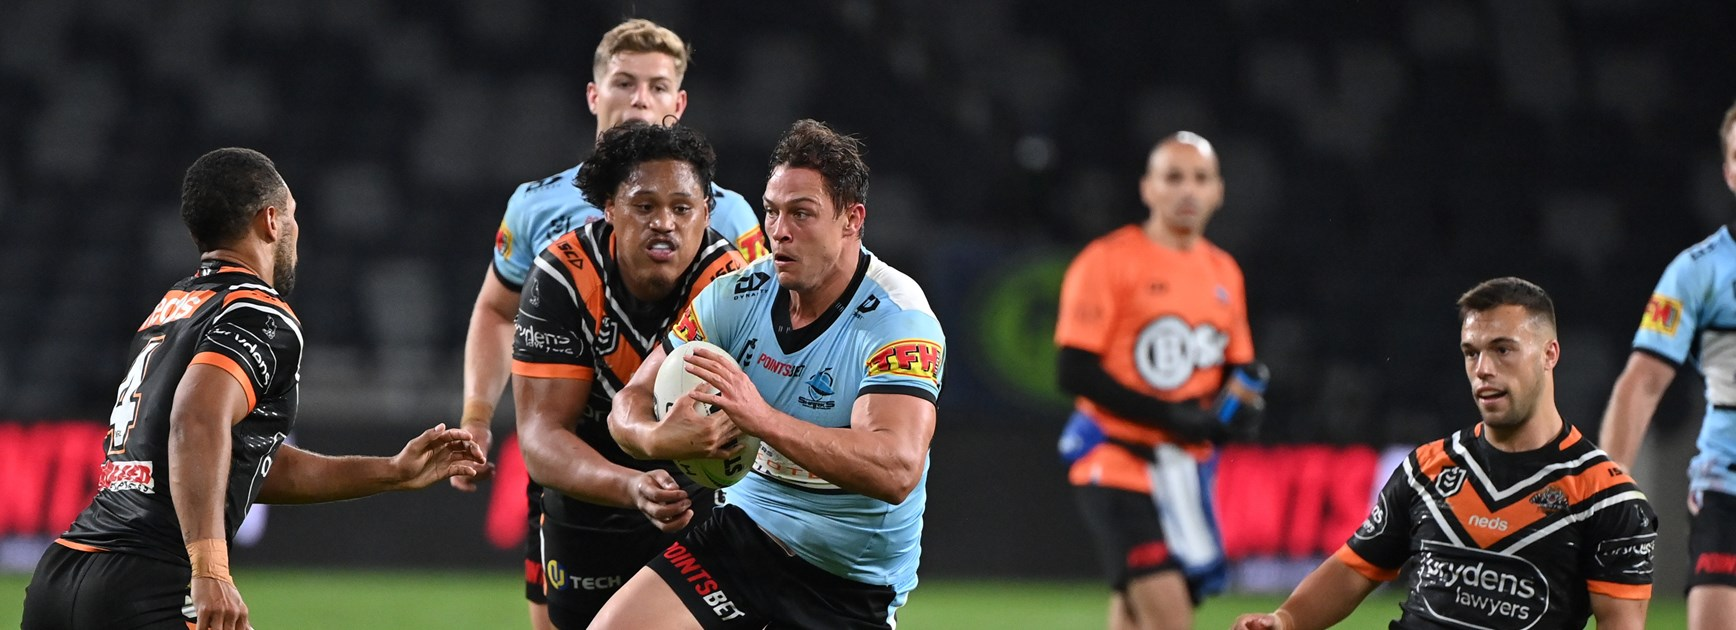 Sharks let first half lead slip in Tigers loss